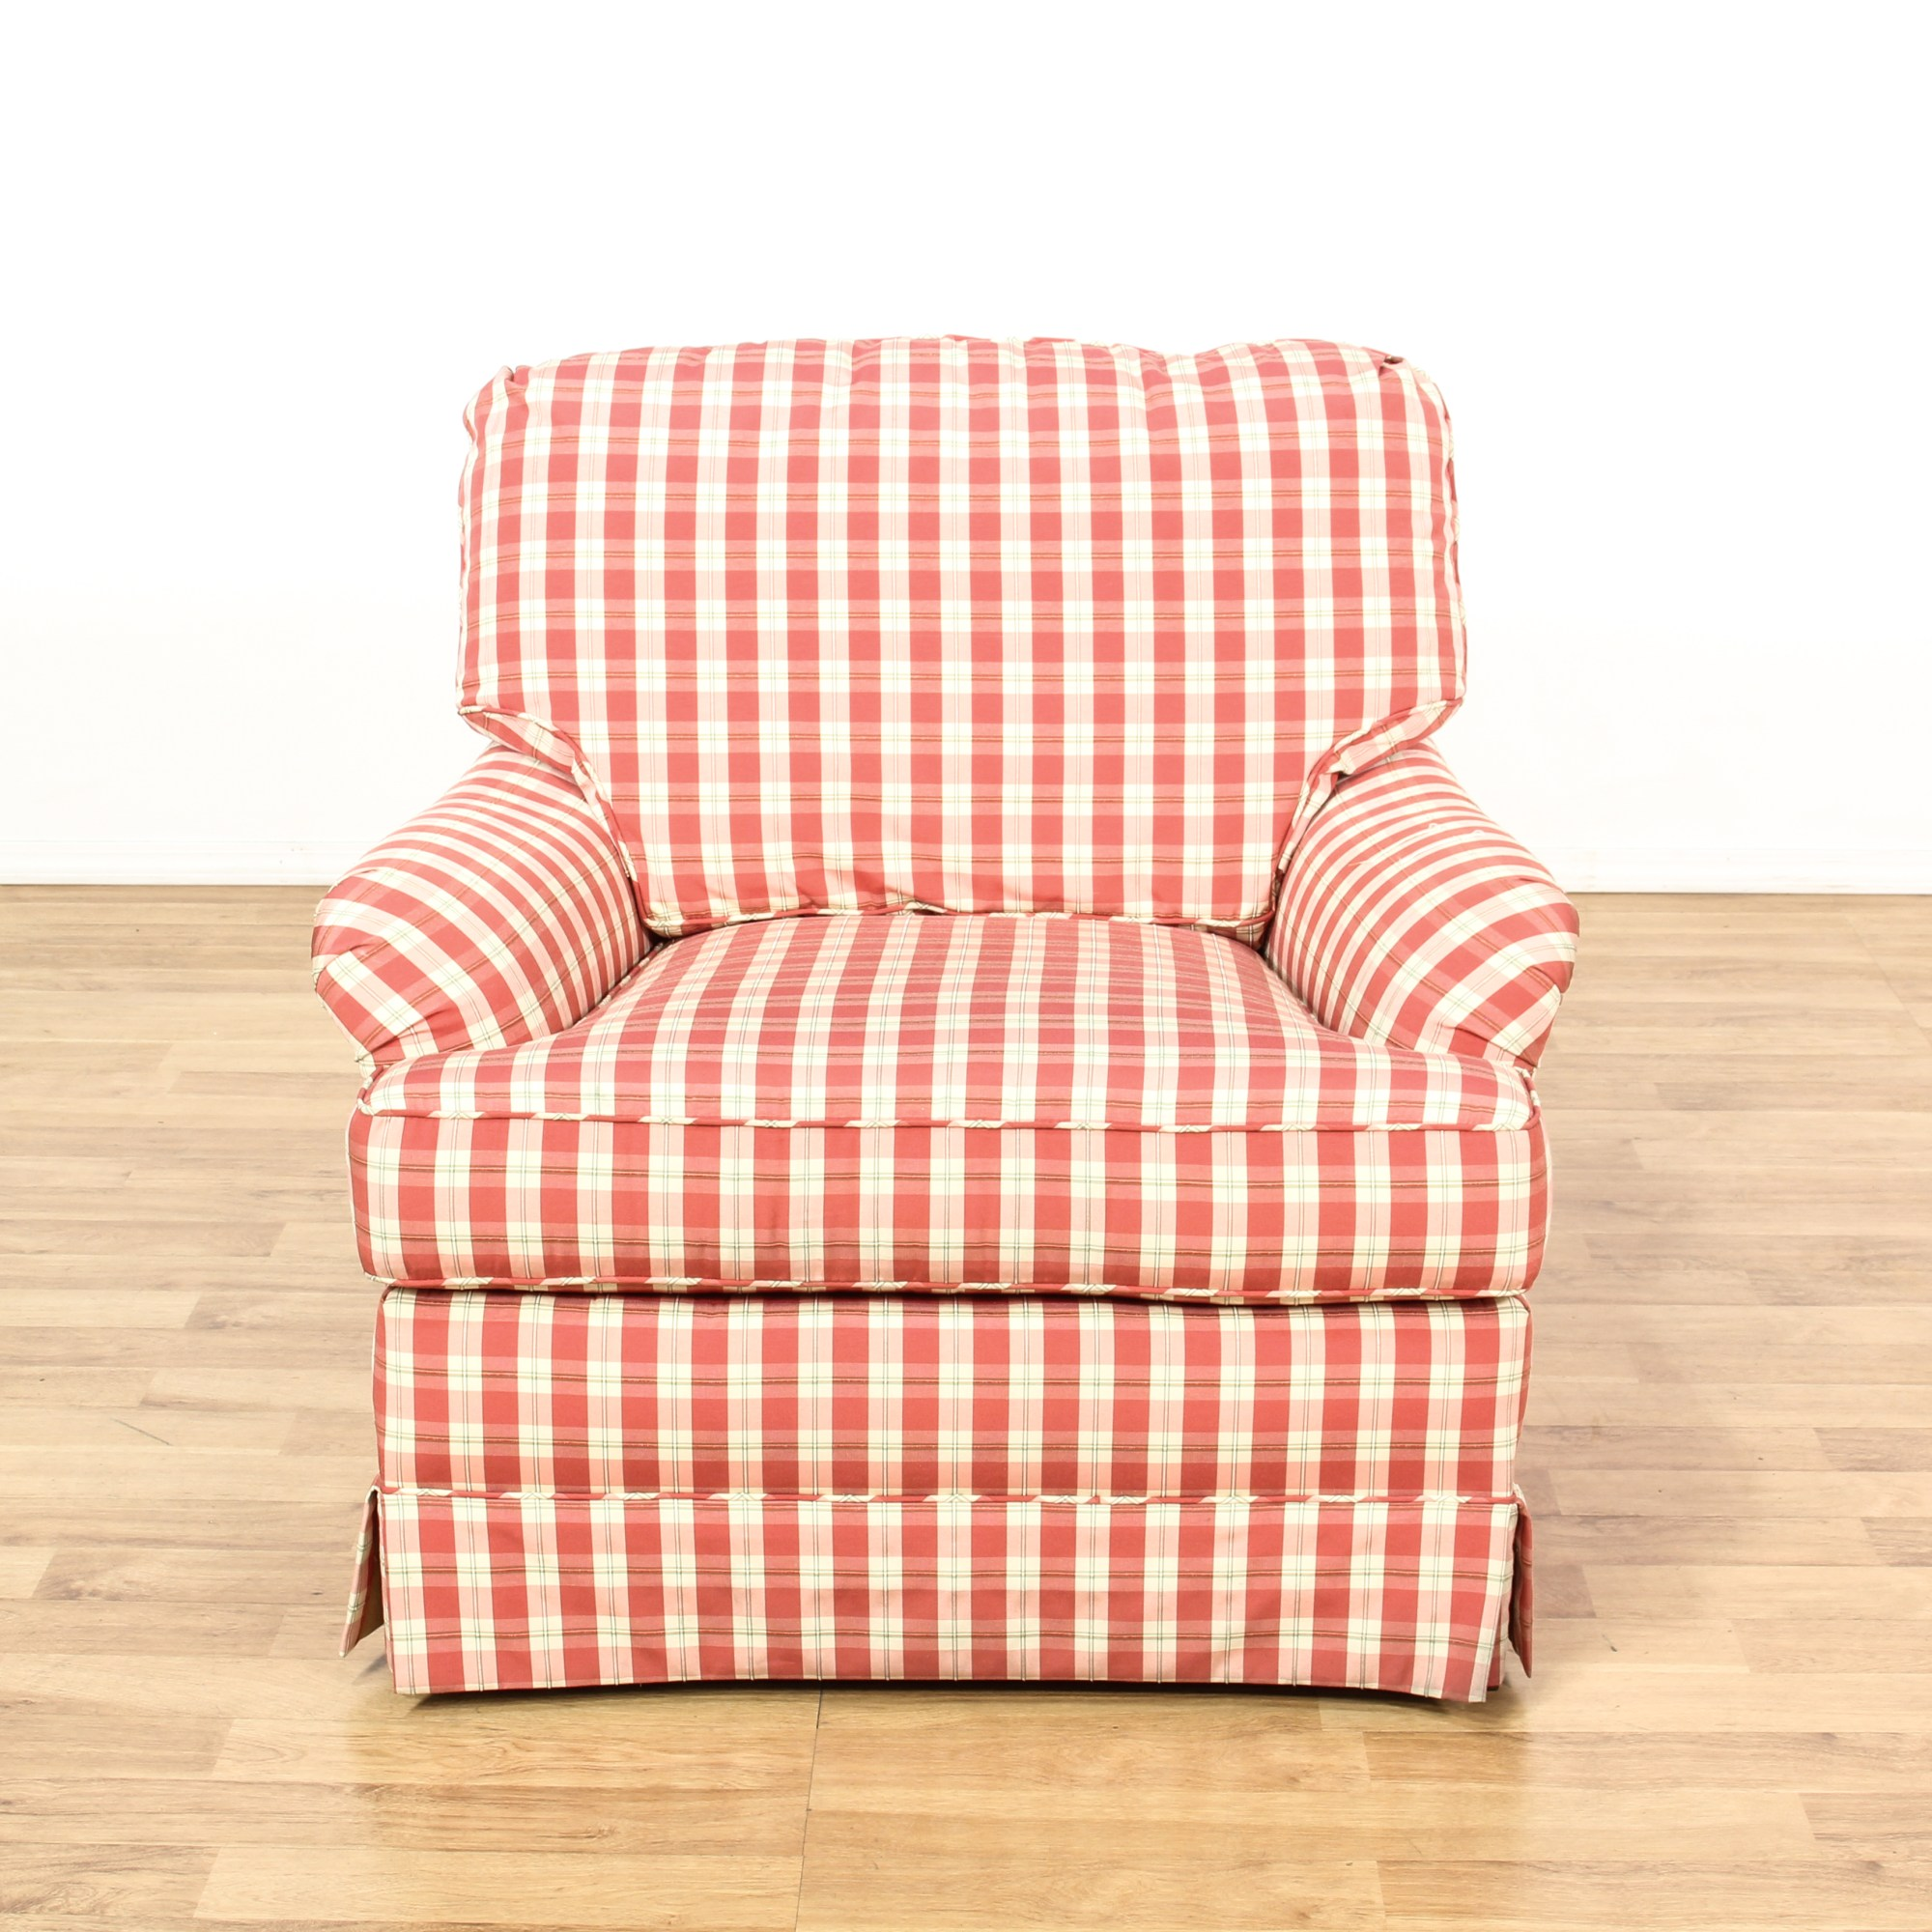 Gingham Chair Red And White Plaid Gingham Print Armchair Loveseat